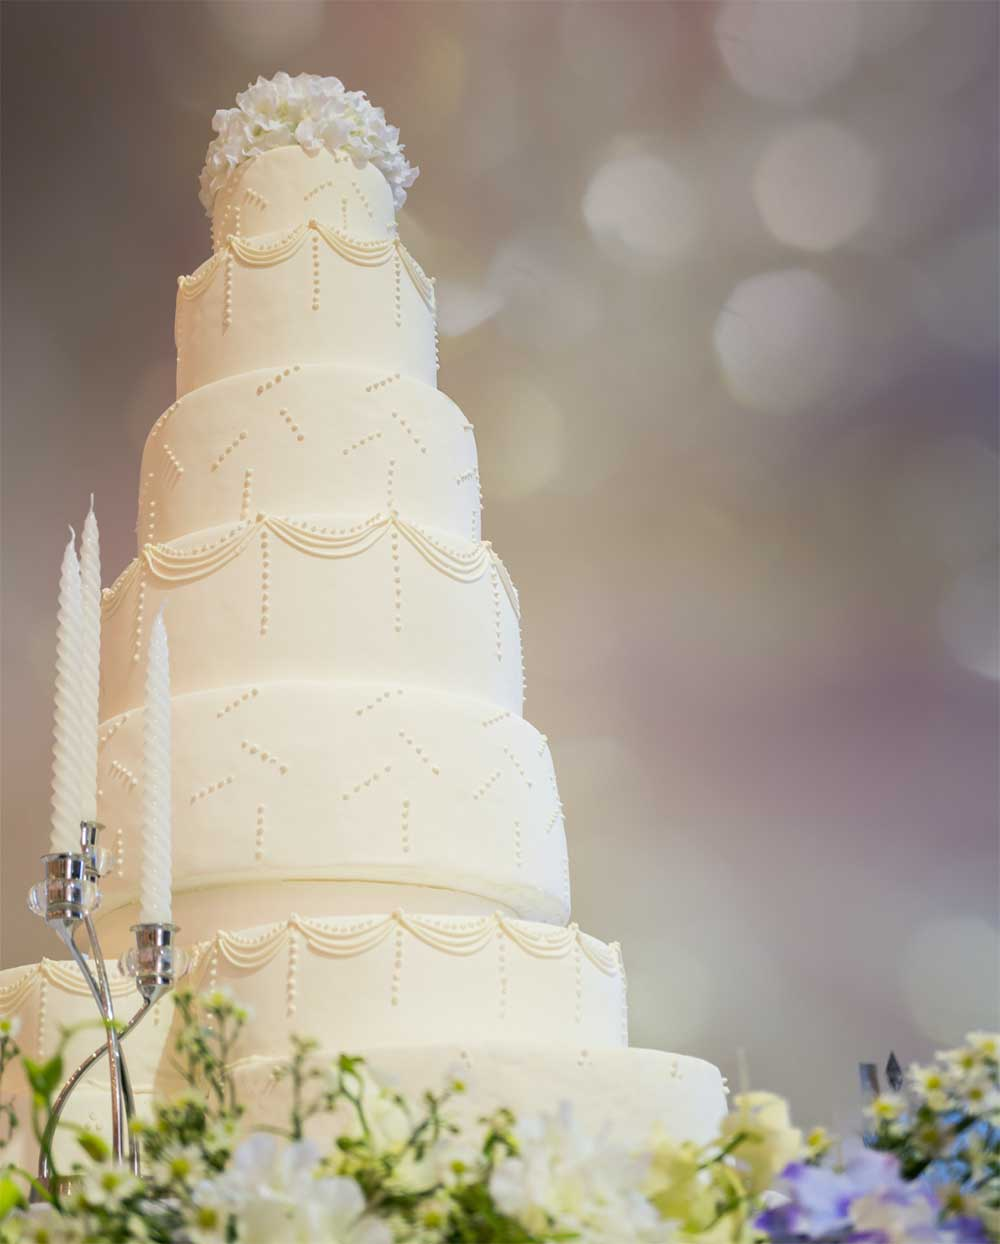 four-tier wedding cake surrounded by flowers and candles